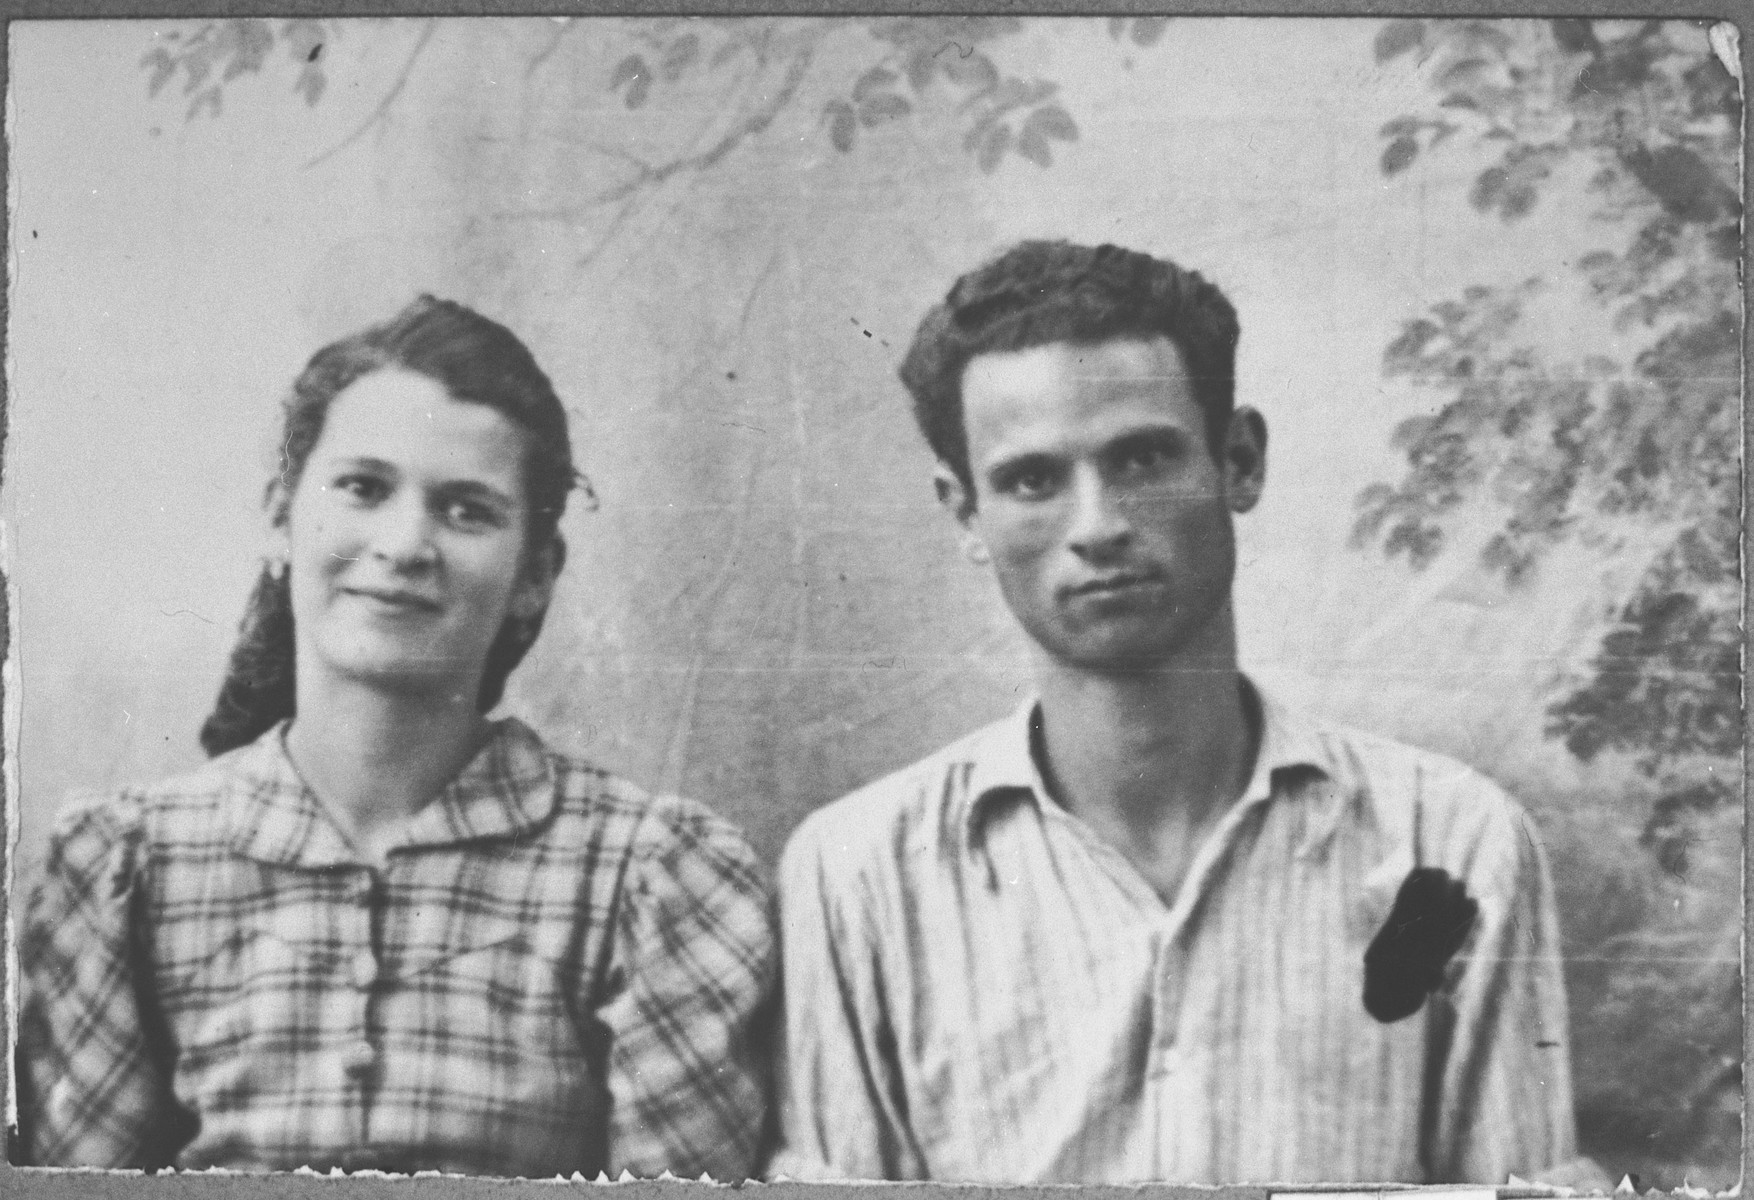 Portrait of Yosef Eschkenasi and his wife, Sara.  Yosef was a laborer.  They lived at Zmayeva 10 in Bitola.